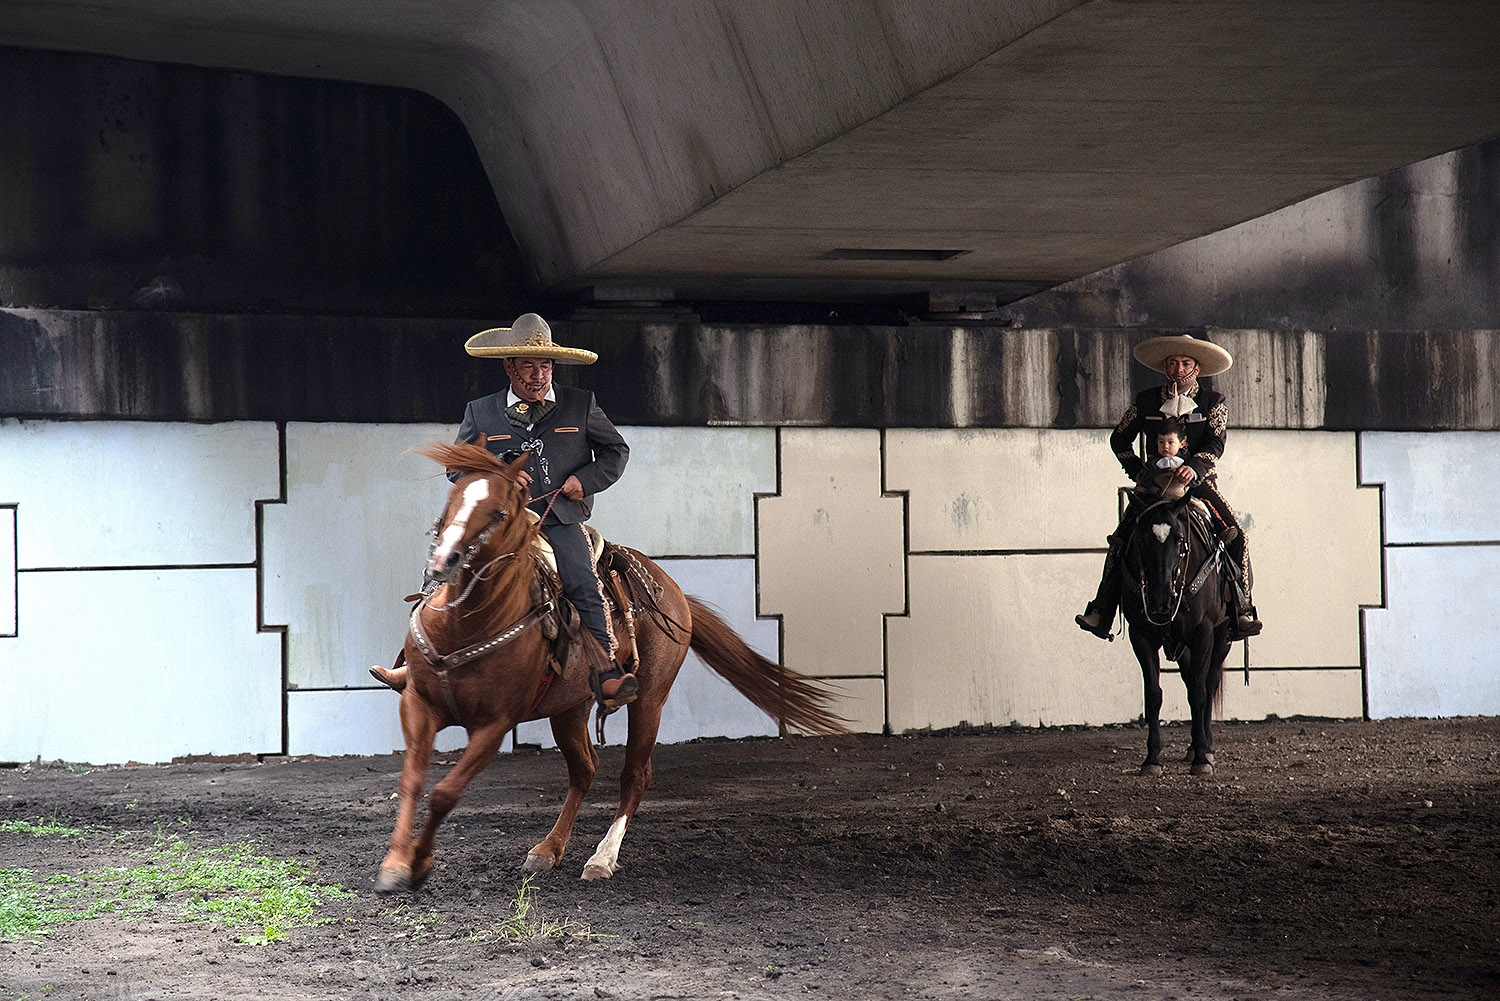 Members of Charros de Bejar practice before the Western Heritage Parade and Cattle Drive Feb. 2 under I-35 at Houston St. <em><b>Photo by V. Finster | Heron</b></em>